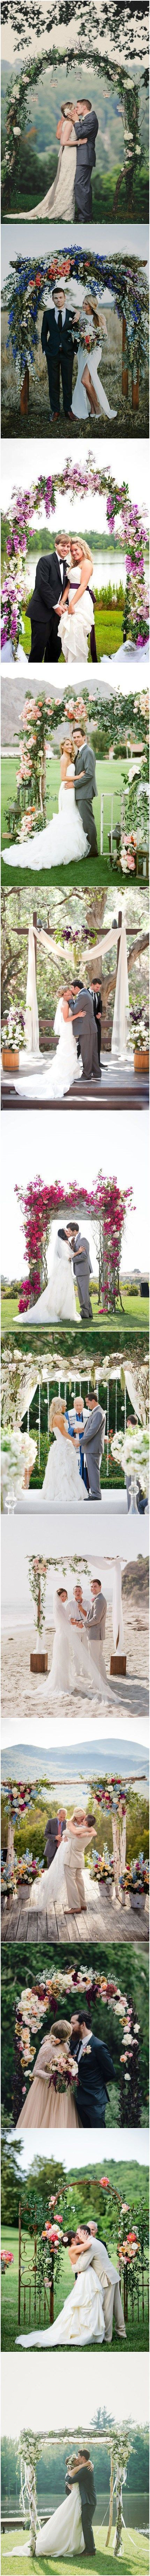 best church images on pinterest weddings decor wedding and